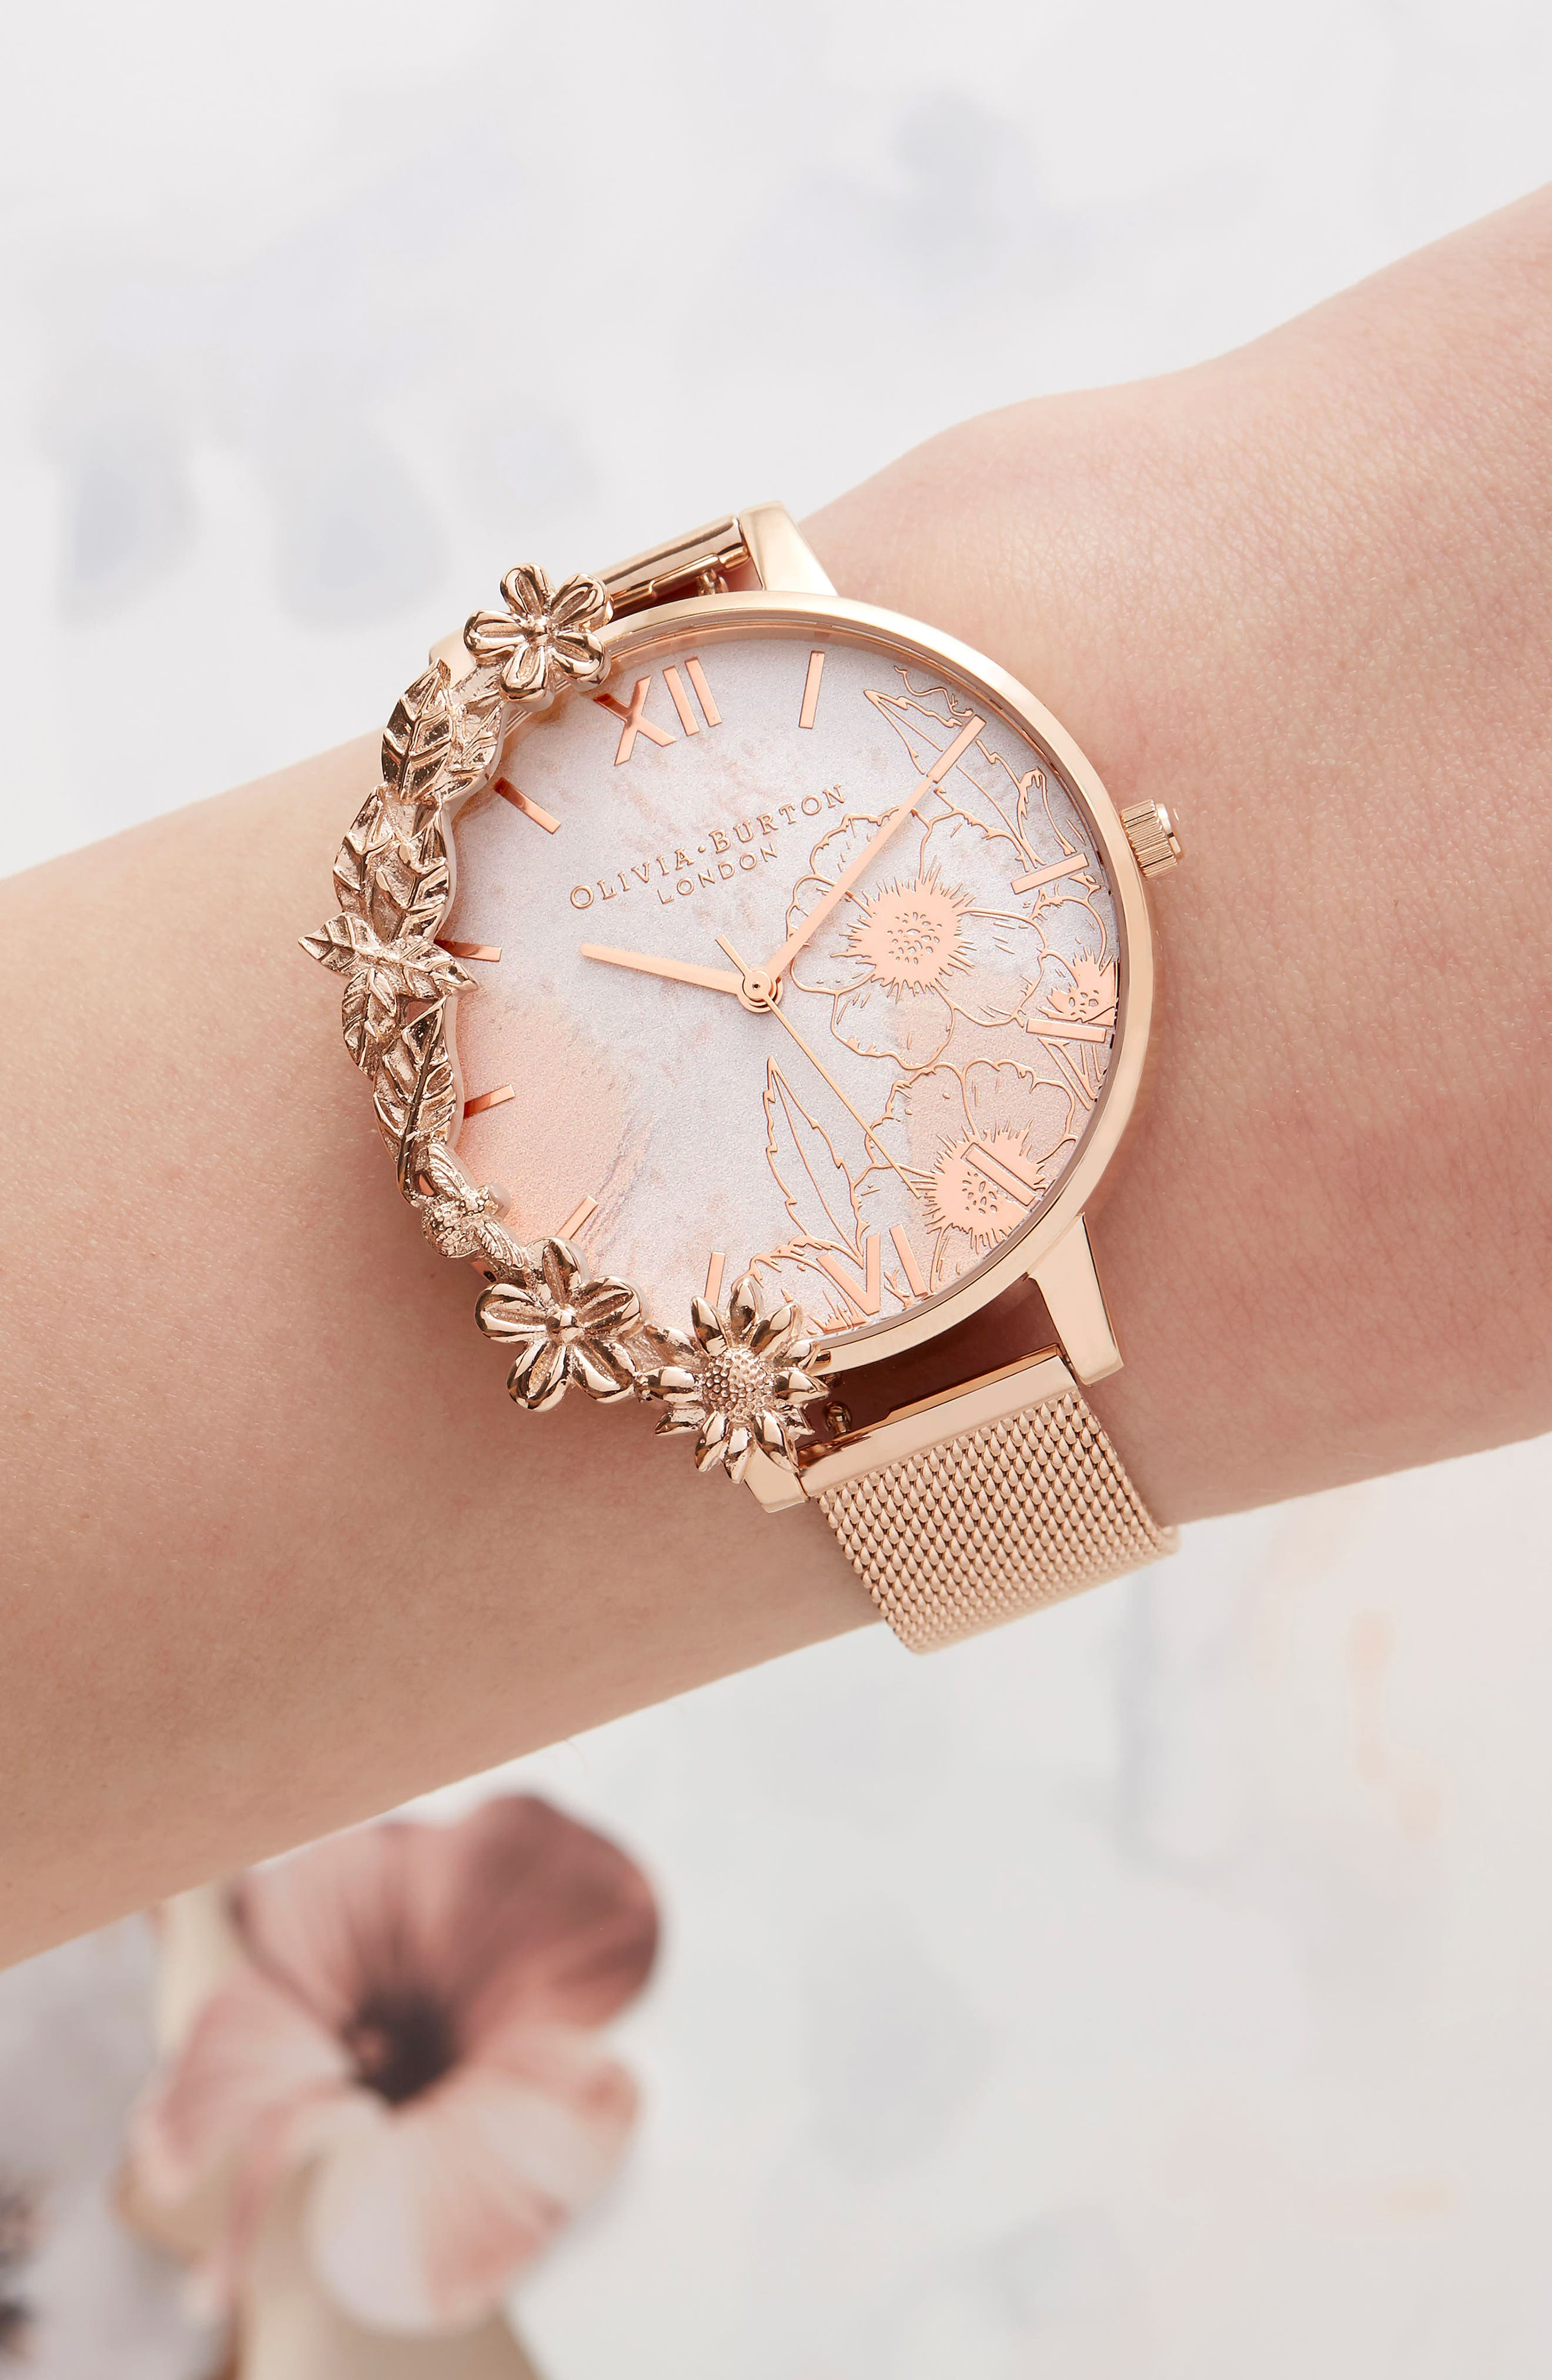 Case Cuff Mesh Strap Watch, 38mm,                             Alternate thumbnail 10, color,                             ROSE GOLD/ FLORAL/ ROSE GOLD